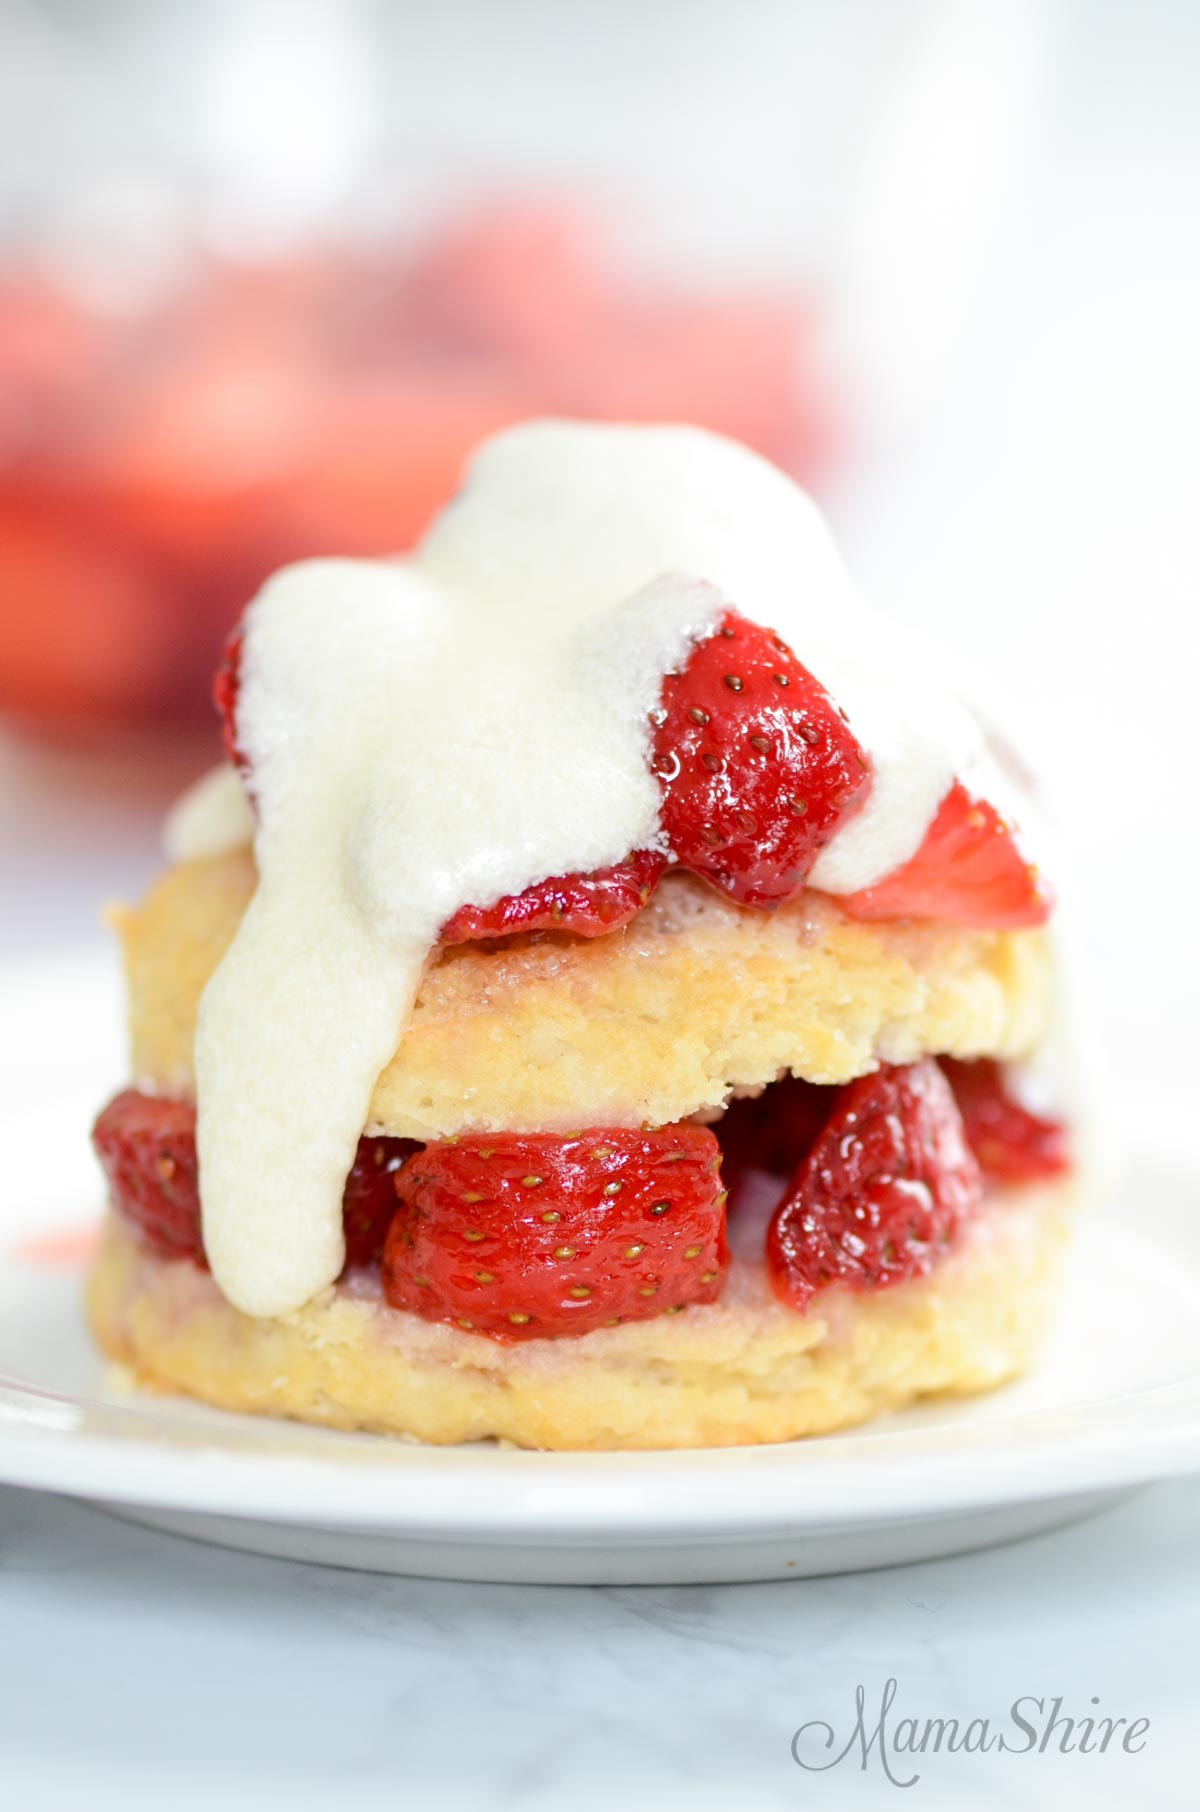 Strawberry Shortcake that part of my 15+ Gluten-Free Mother's Day Recipes.